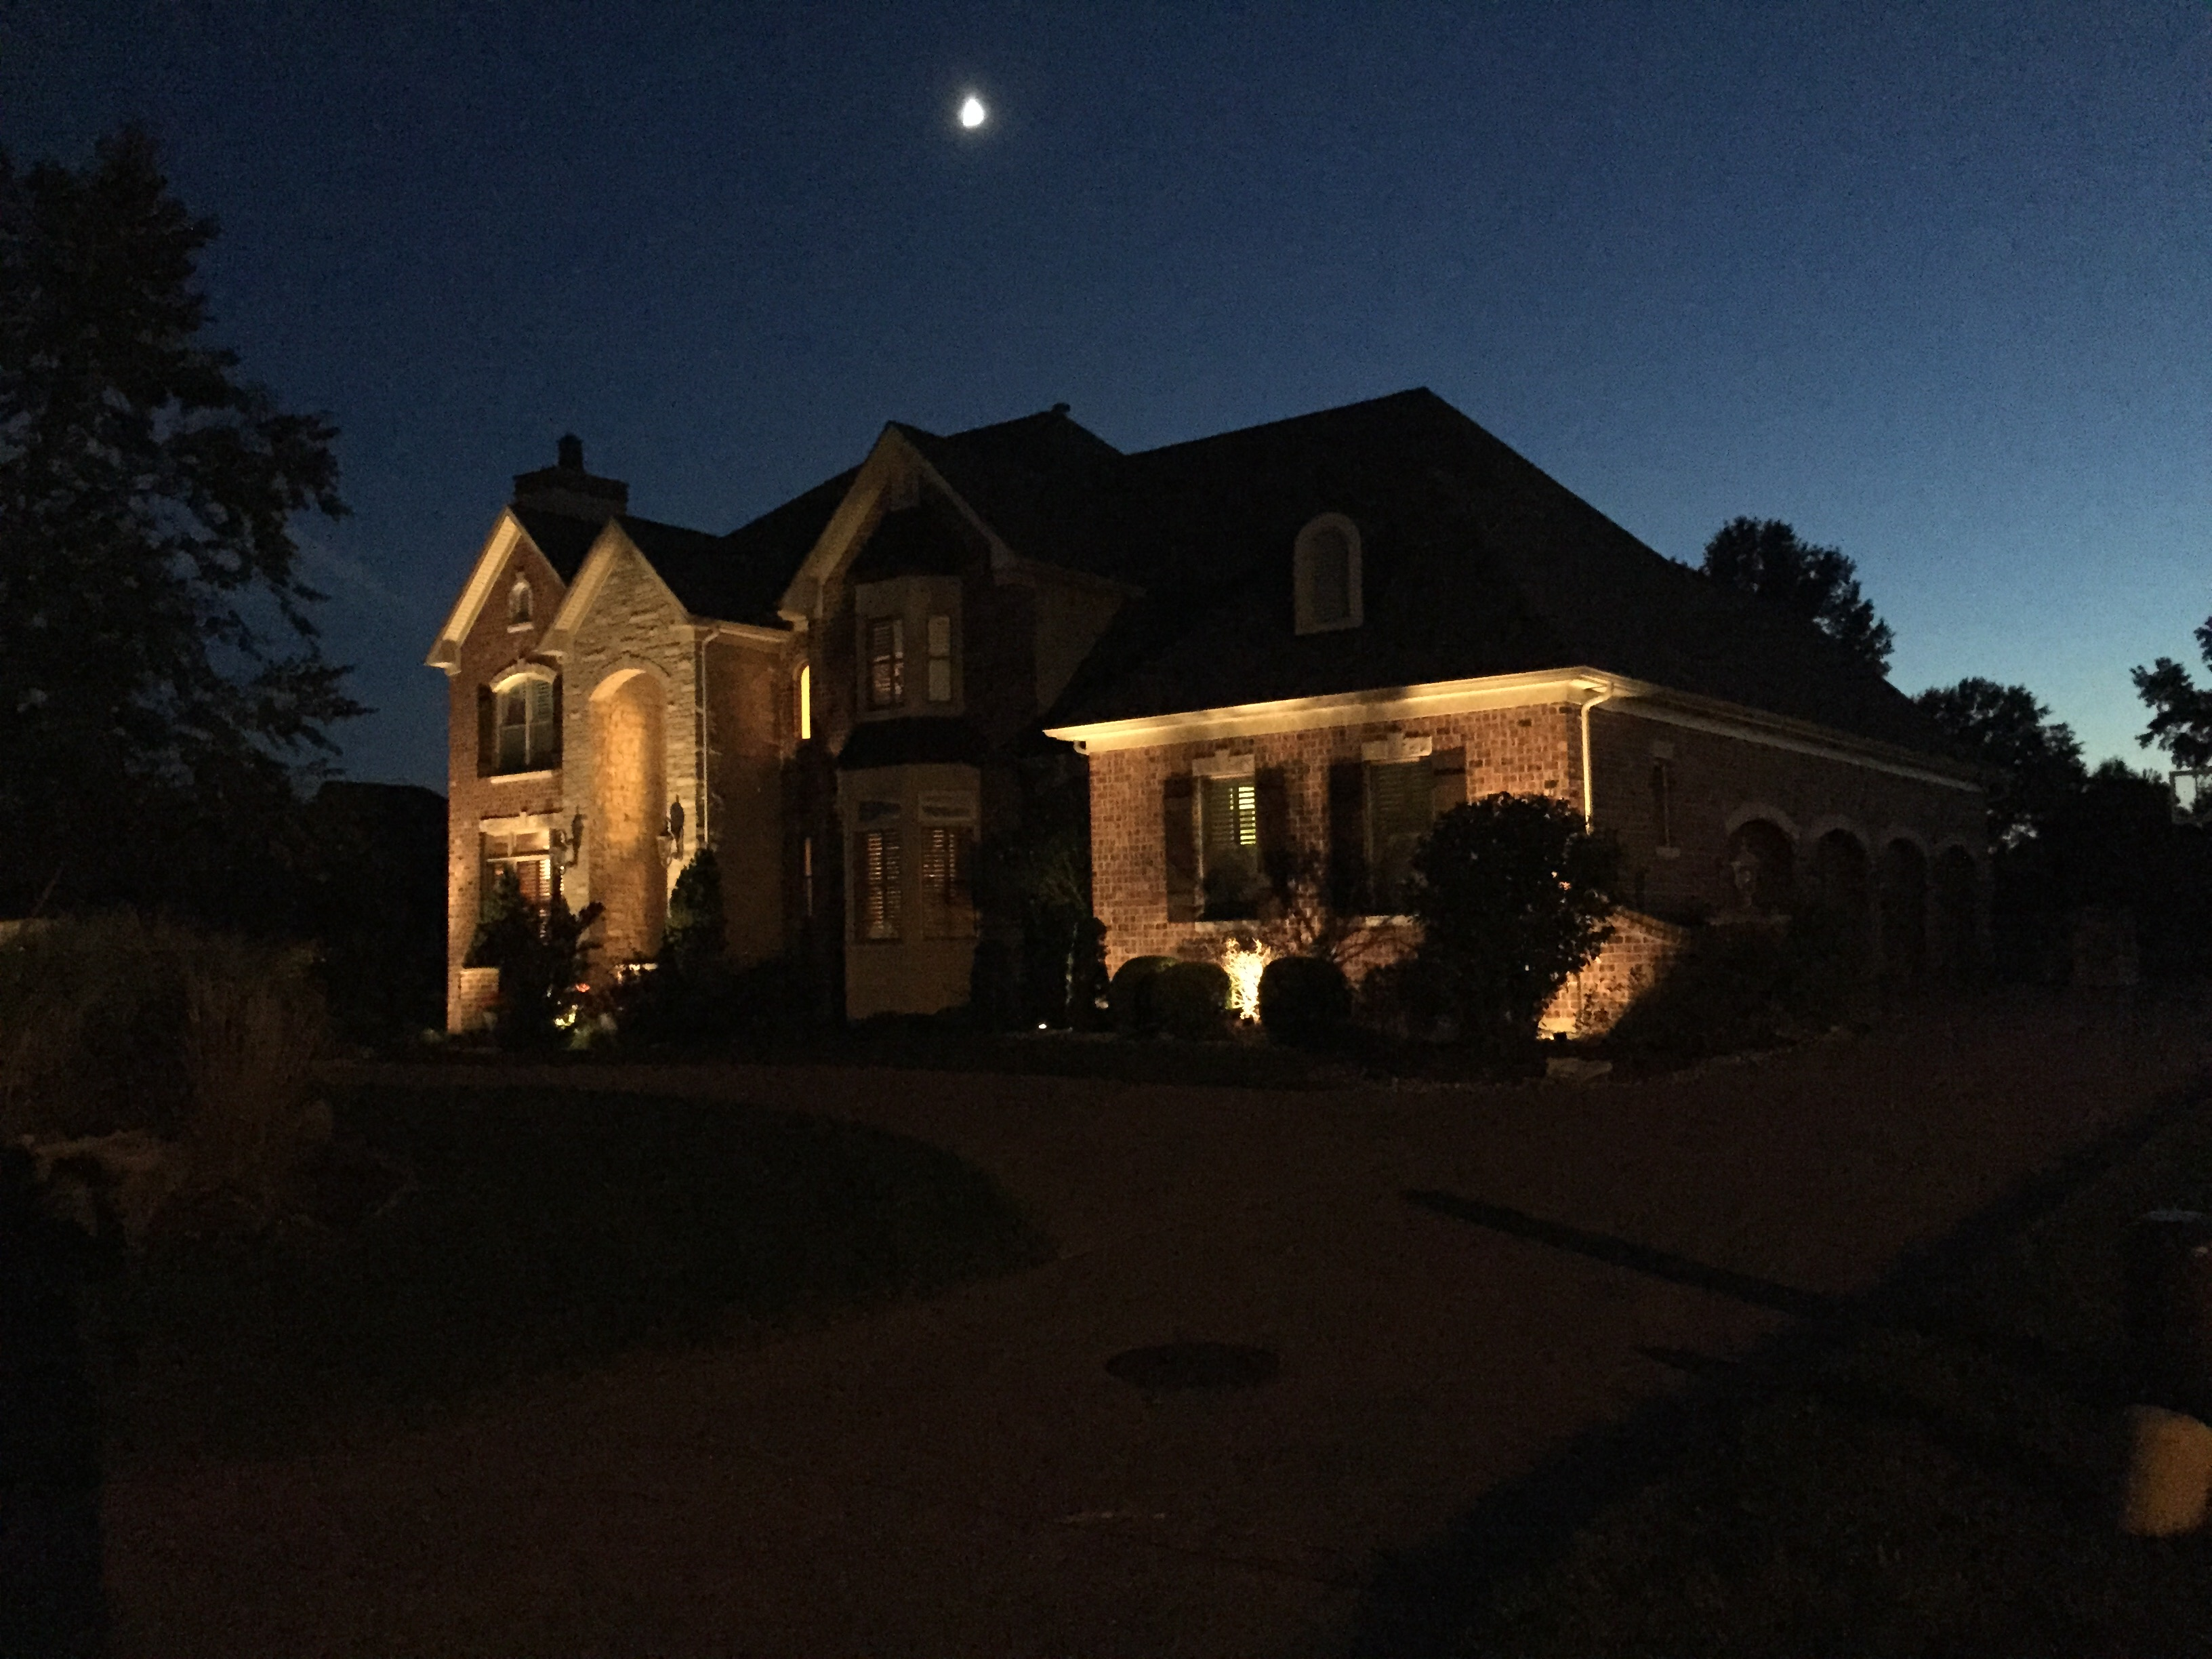 House with Exterior Lighting and Driveway